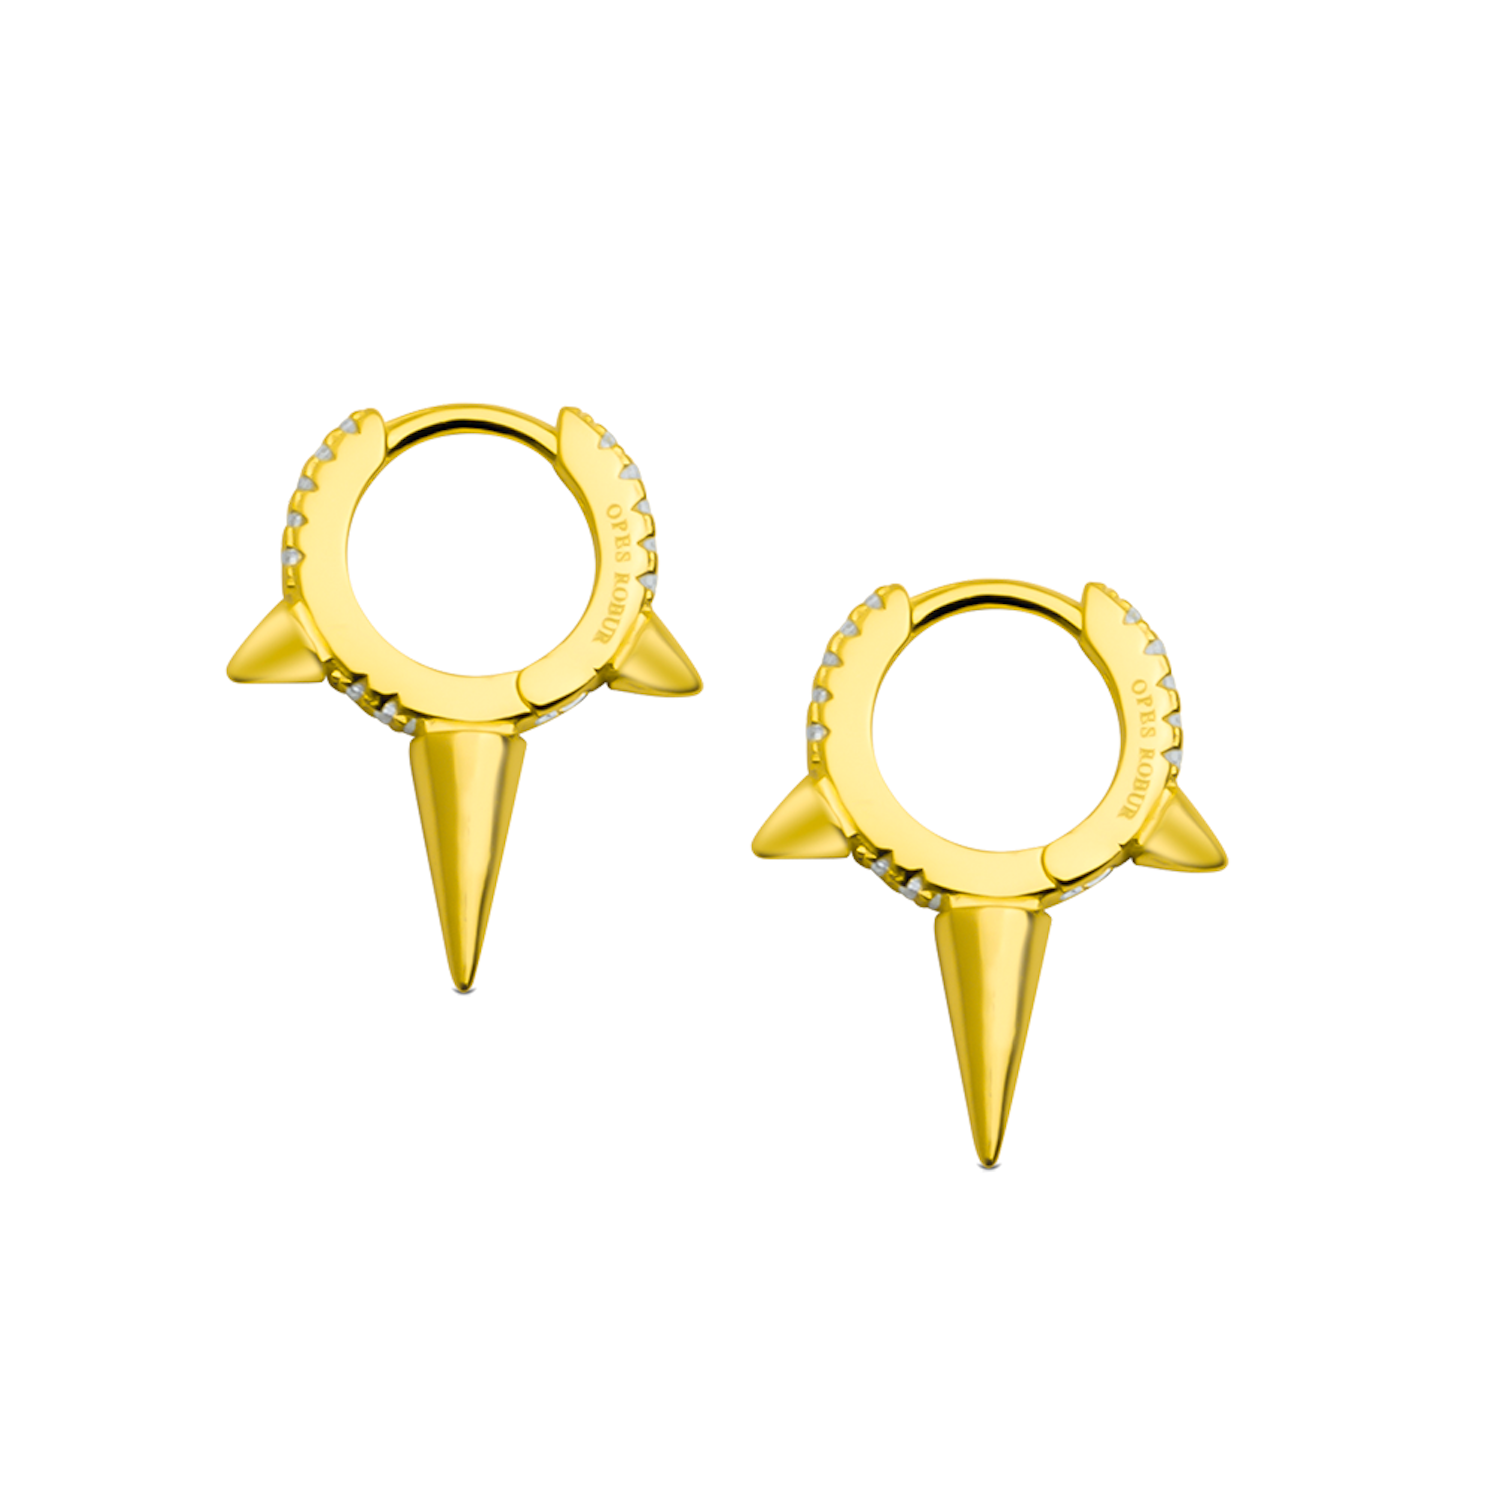 MEDIUM SPIKED HOOPS